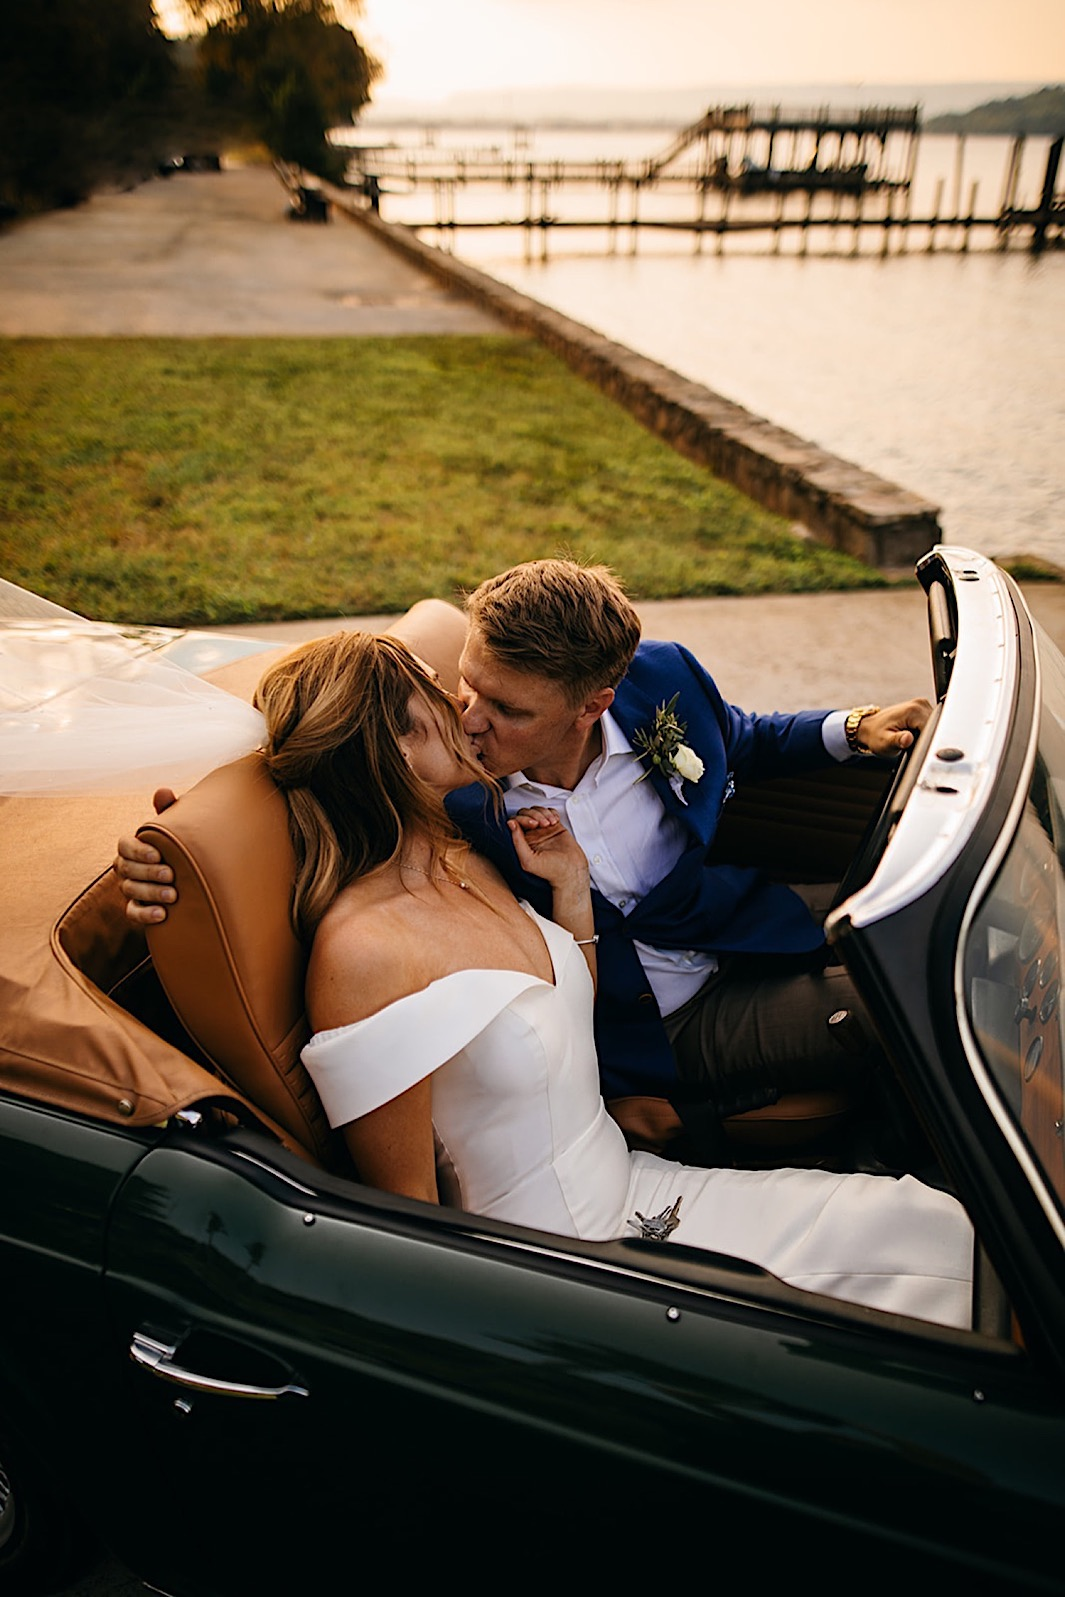 A bride and groom kiss in the front seat of a vintage car.